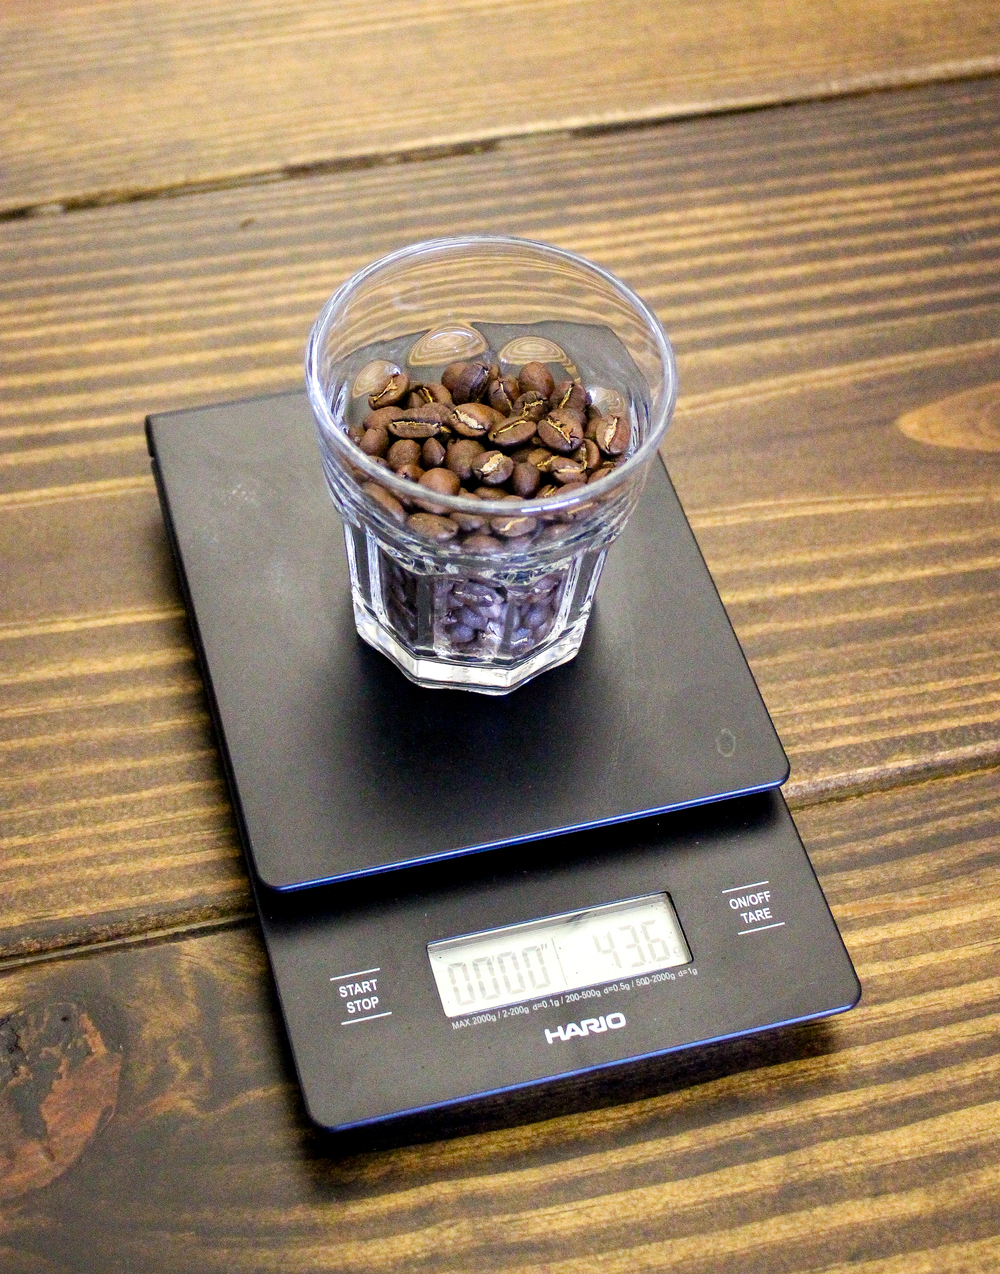 2. Weigh out 44 grams of coffee. Grind to medium-coarse consistancy (like turbinado sugar).